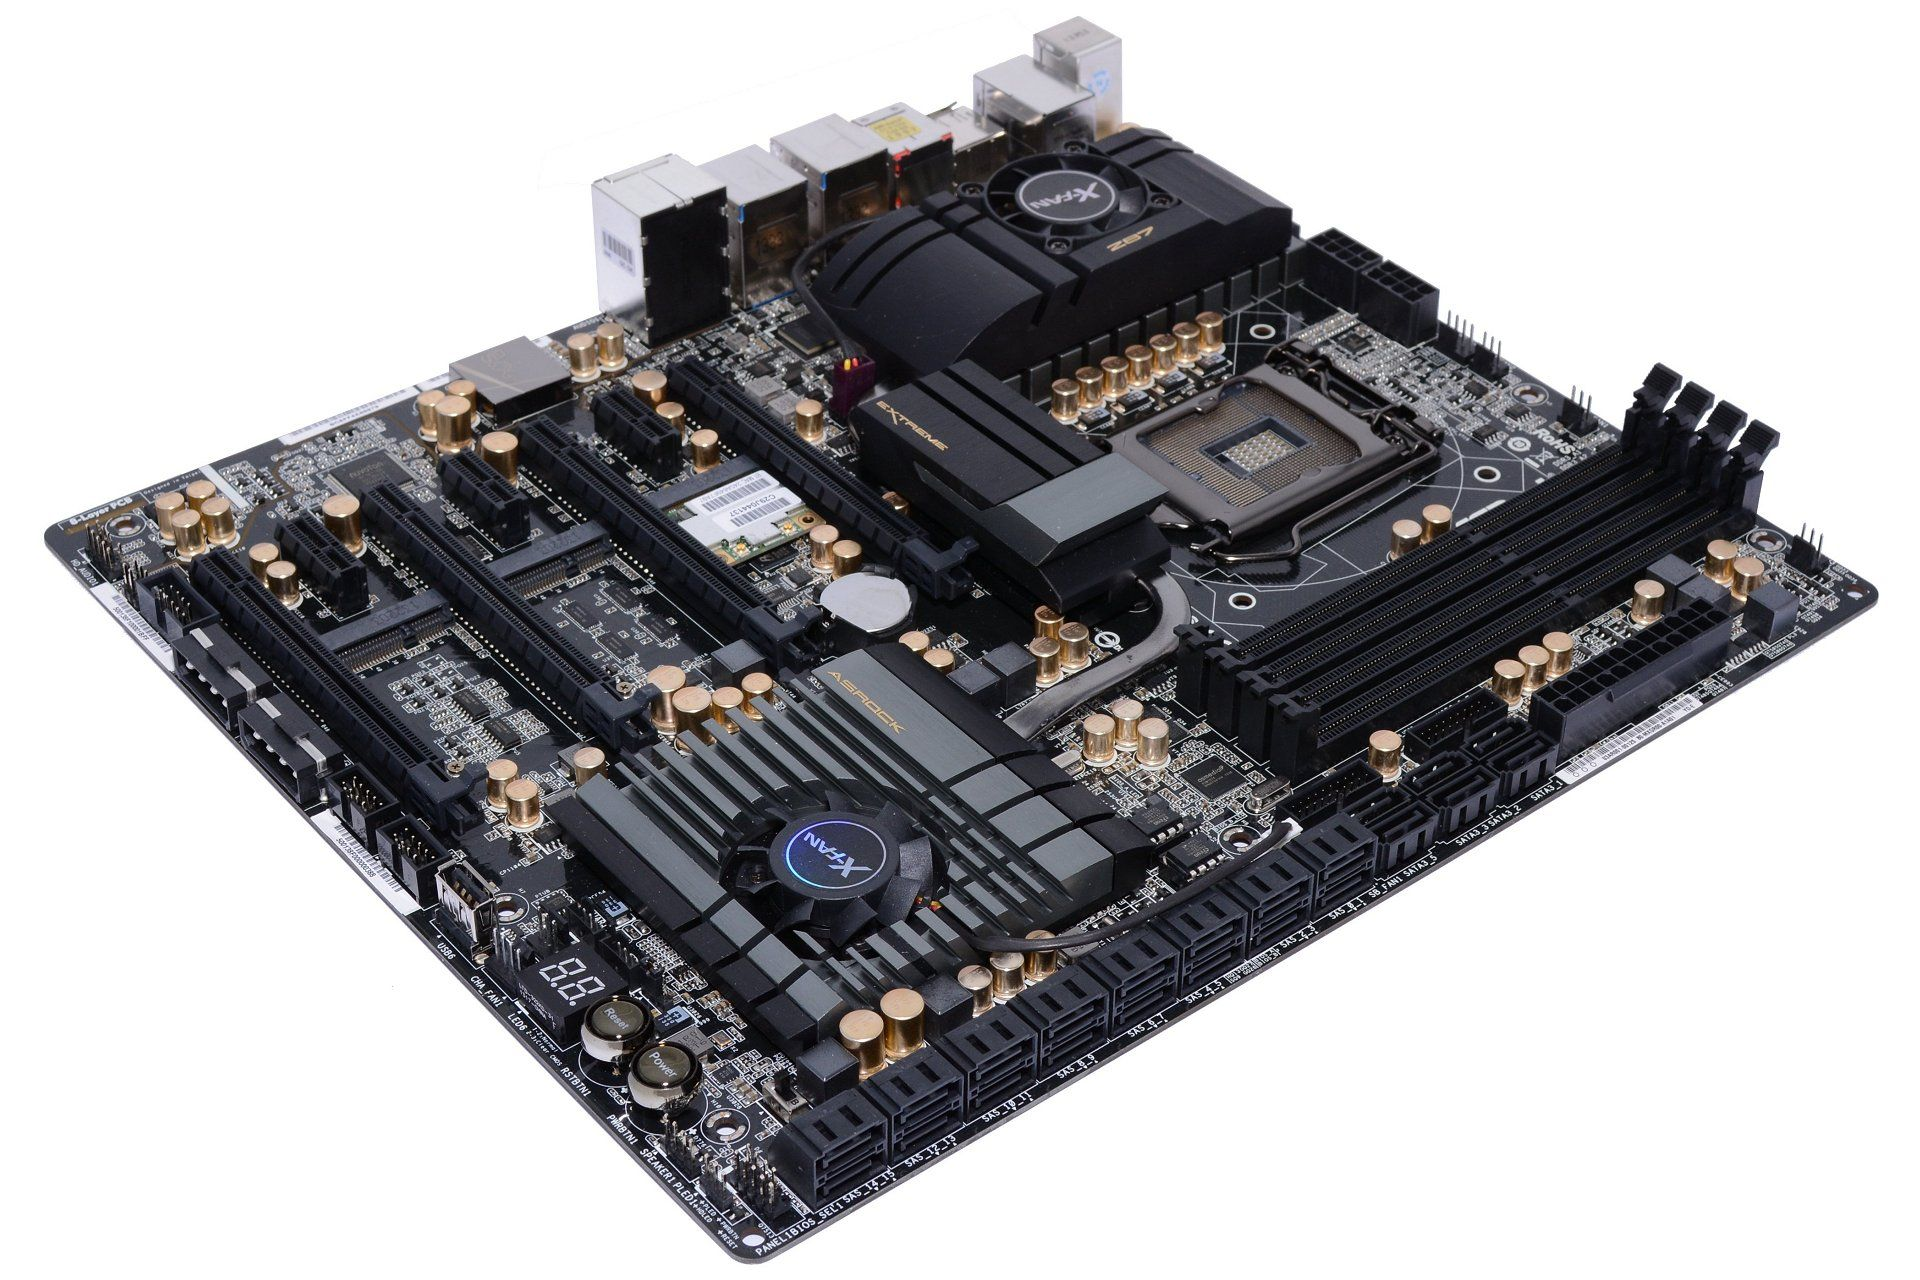 ASRock Z87 Extreme11/ac Intel Graphics Download Driver